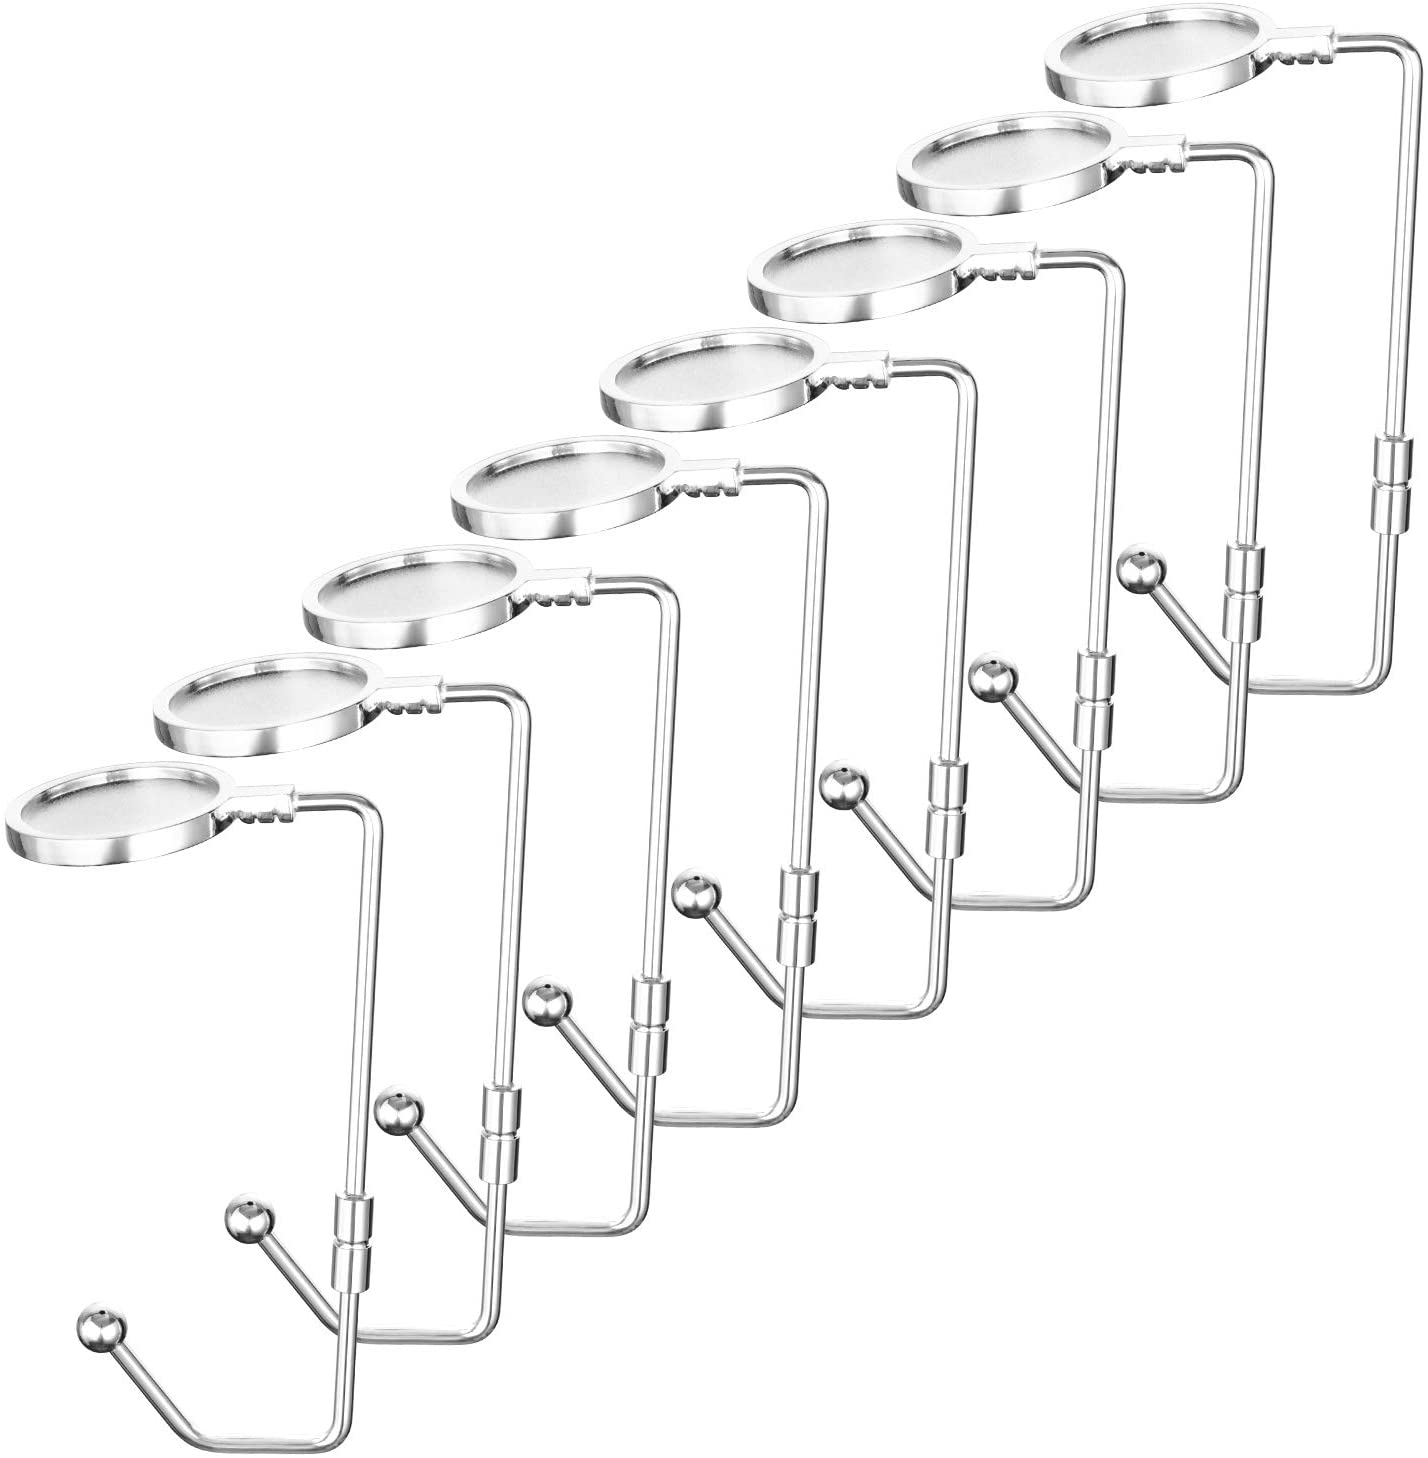 Oyydecor Rotatable Christmas Stocking Holders Mantel Hooks Hanger Christmas Stocking Clips Safety Grip for Christmas Party Decoration (Silver, 8 Pack)